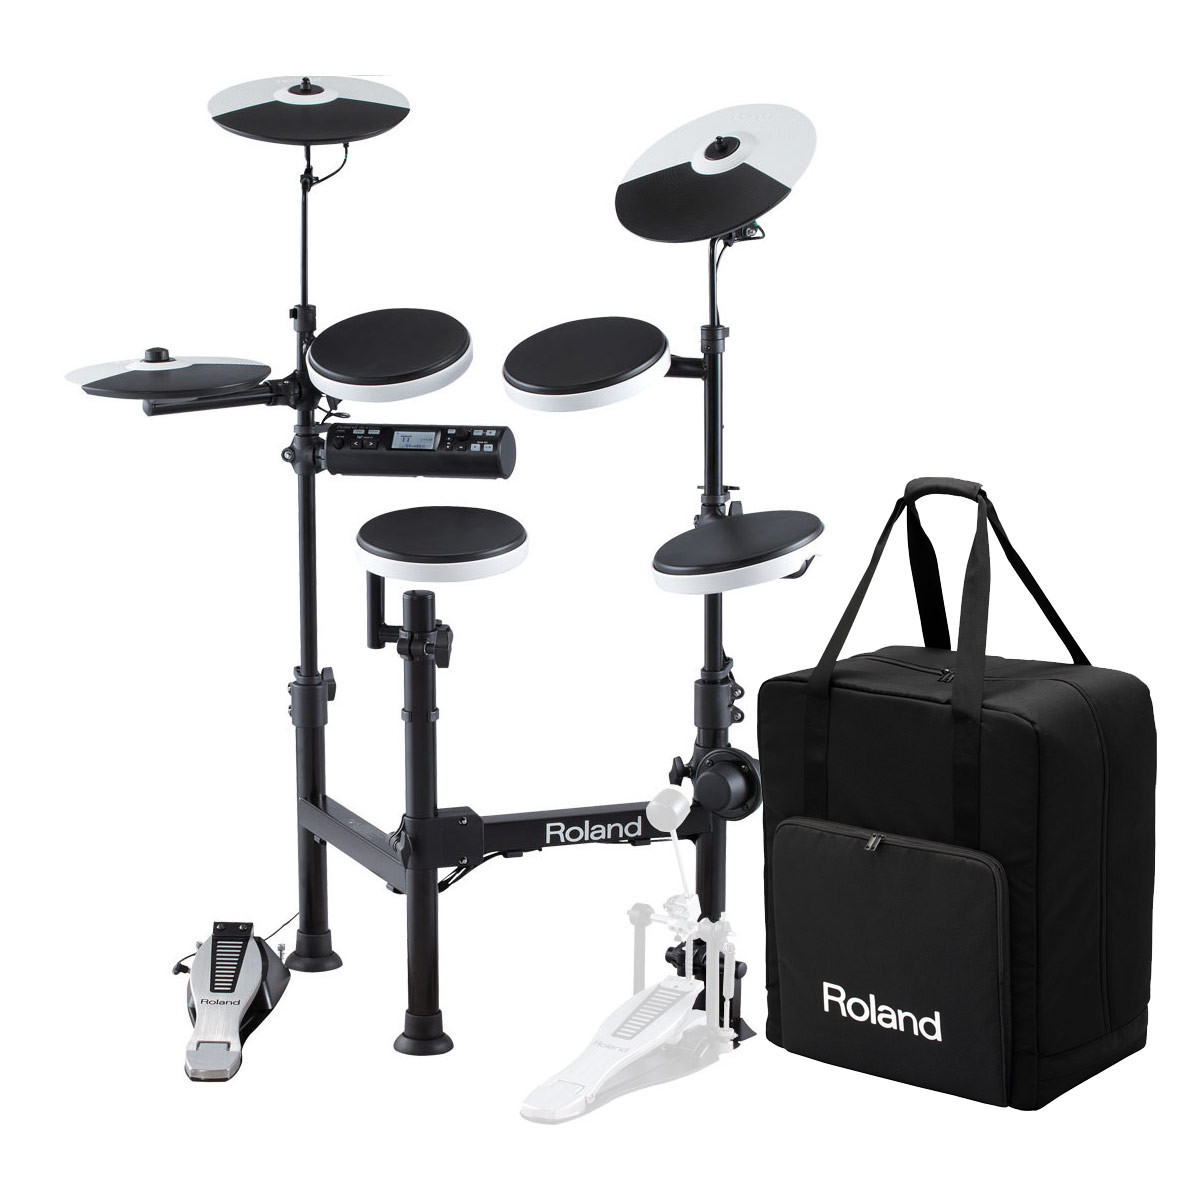 roland td 4kp v drums portable electronic drum kit carry case at rh gear4music no Roland TD 4 Drum Set roland td-4 service manual